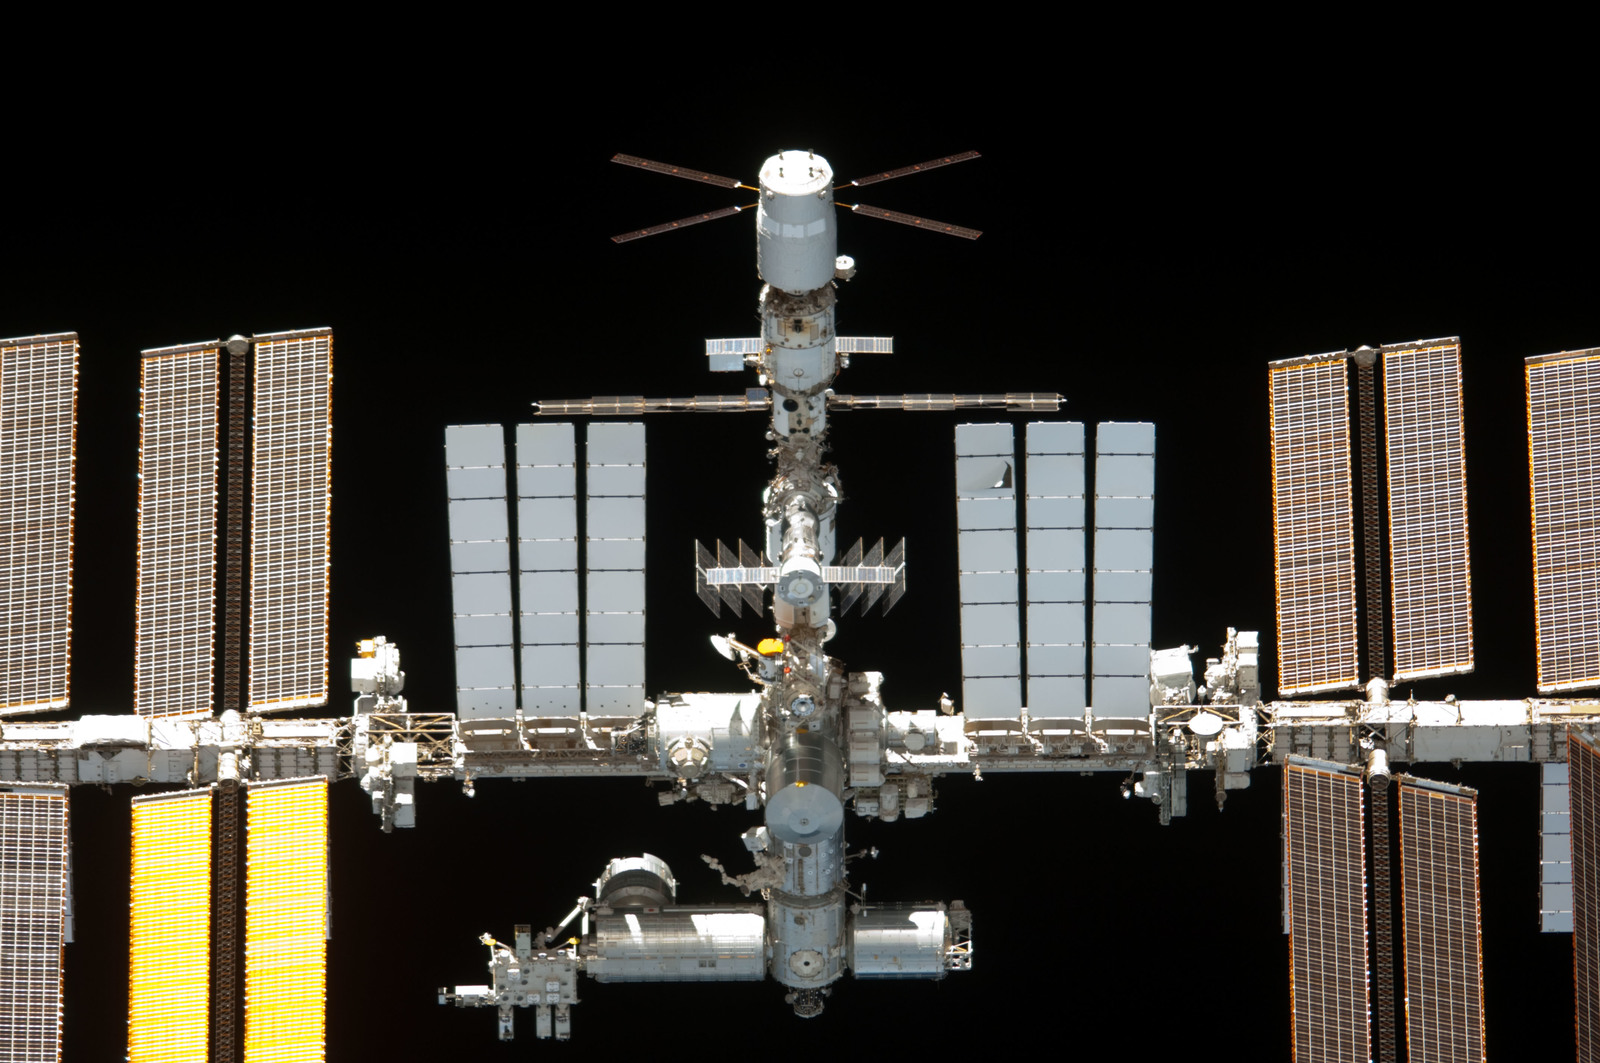 S134E011564 - STS-134 - Overall view of ISS